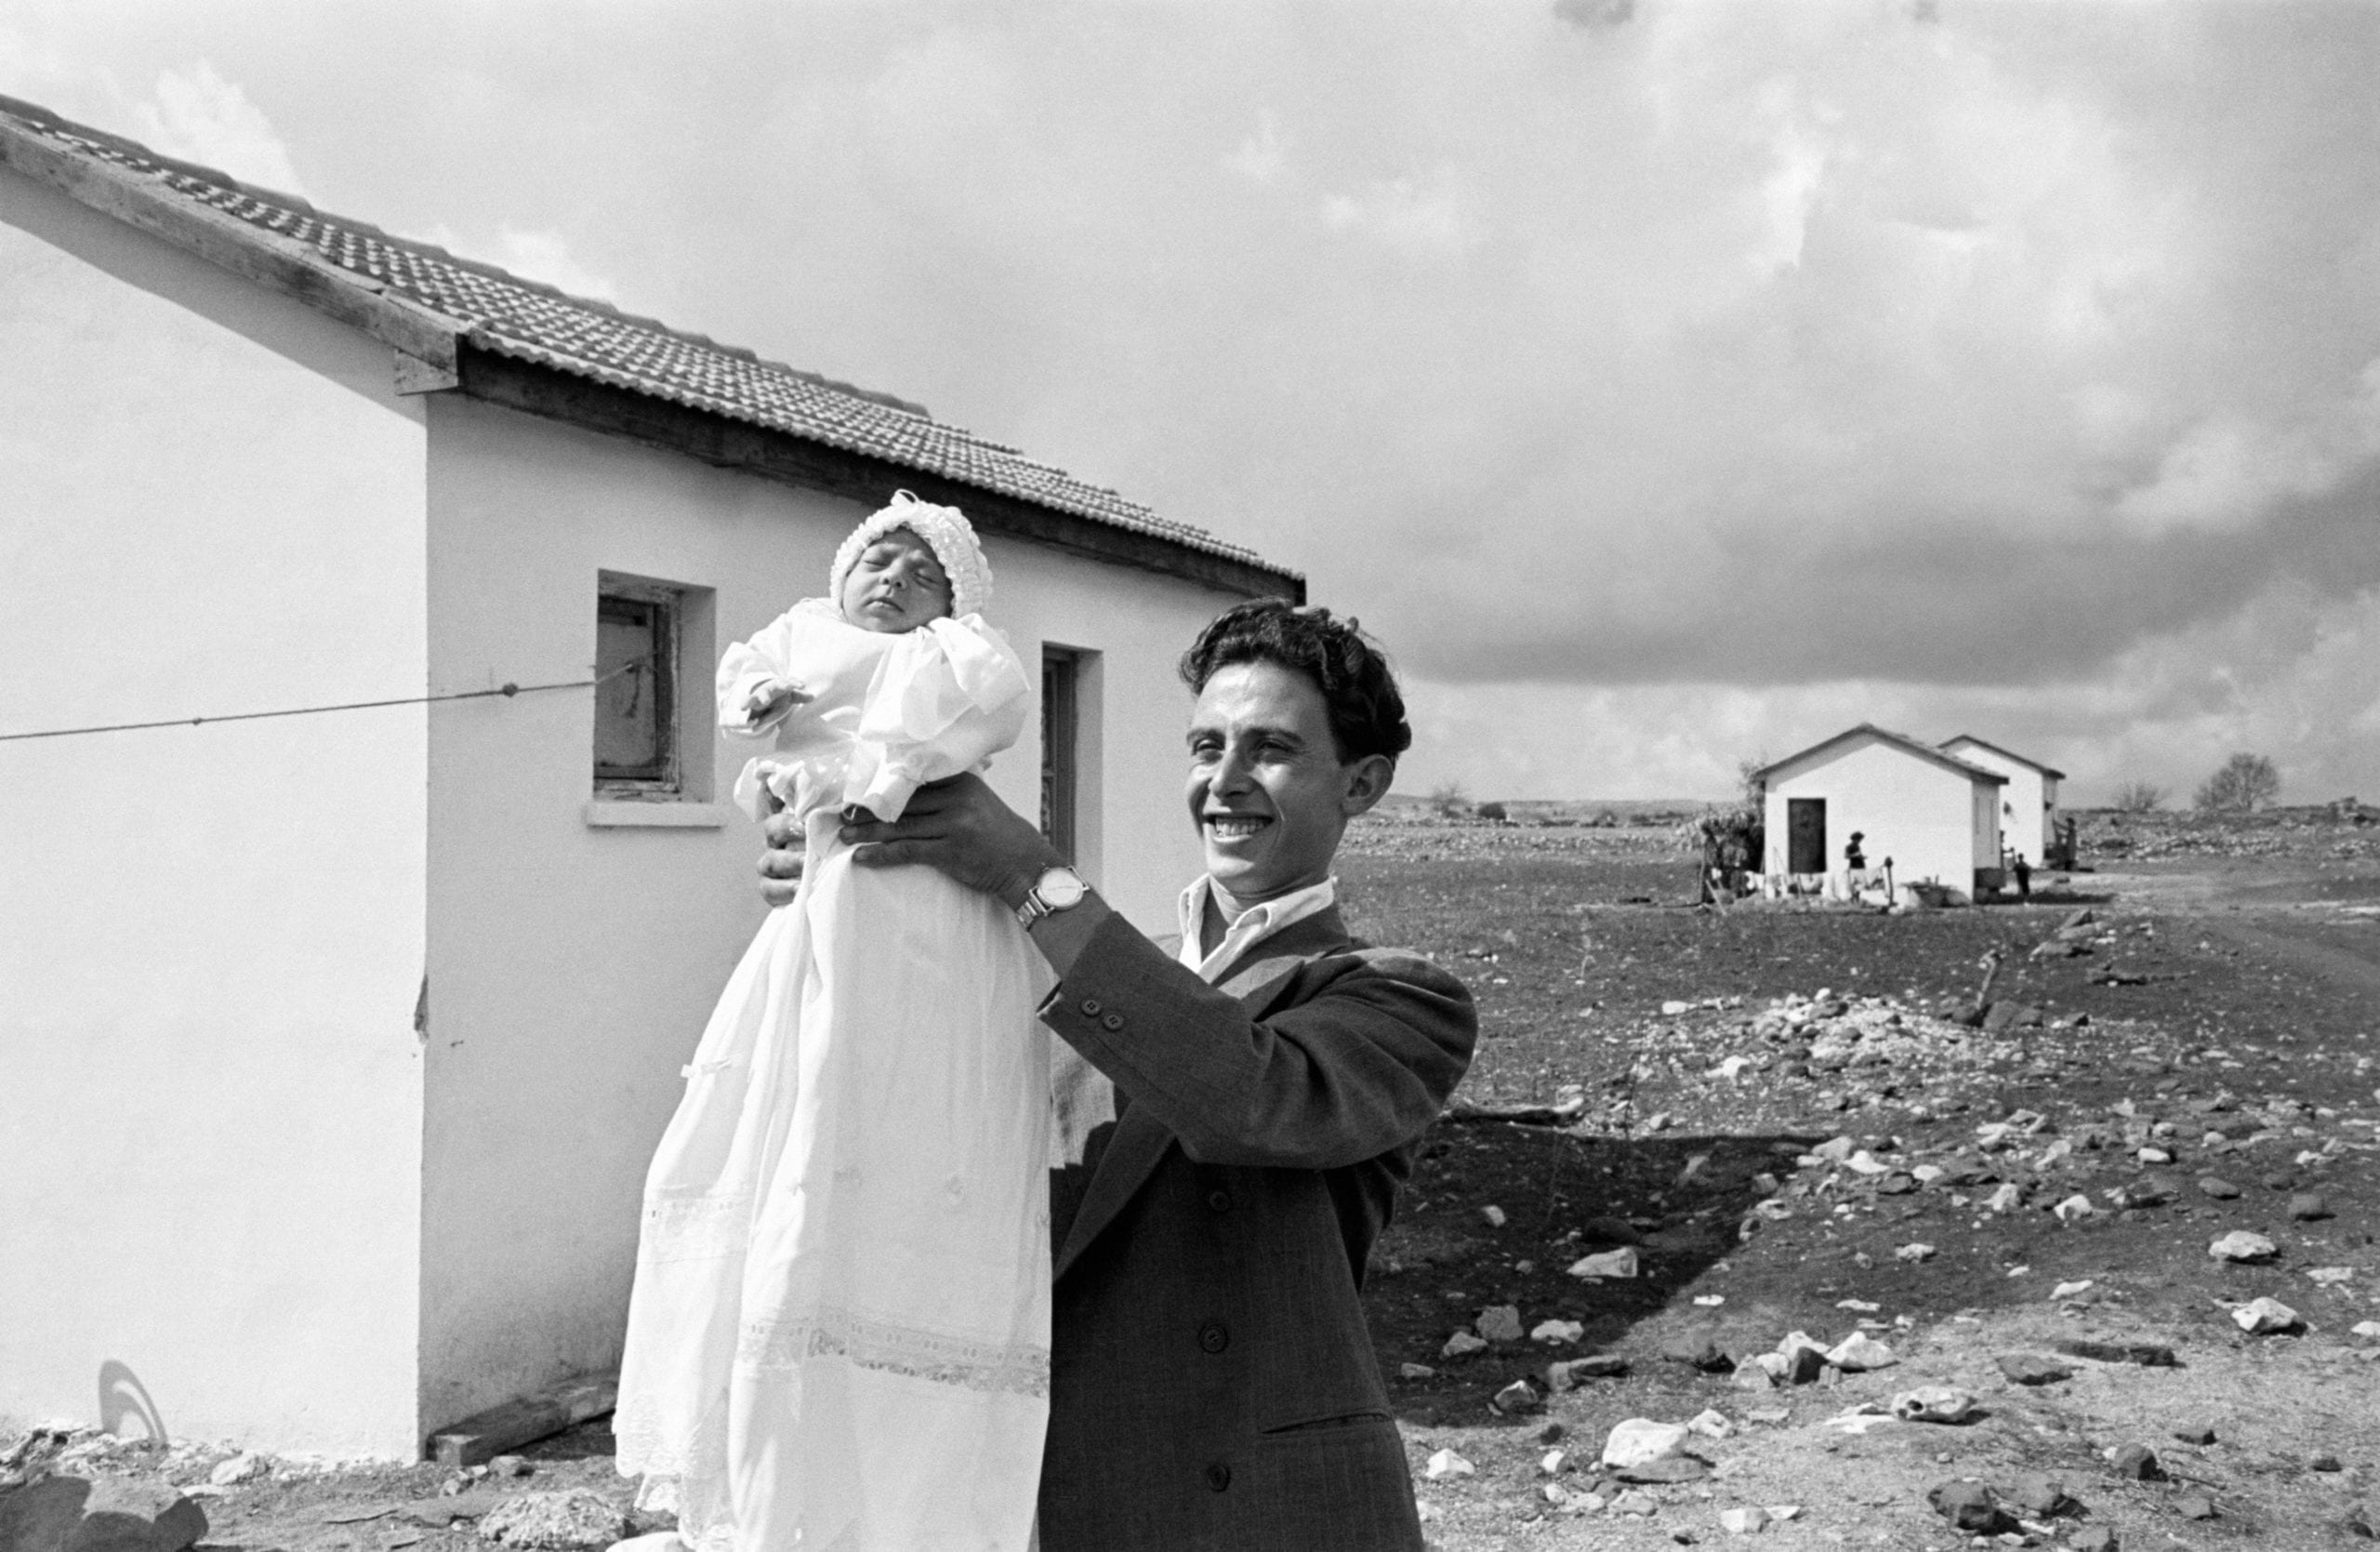 ISRAEL. 1951. First child (Miriam TRITO) born in the settlement of Alma. Eliezer TRITO is in charge of the pipeline construction work which is going to bring water from a source 3 miles away. He is seen here with the daughter he had with his wife Miriam.